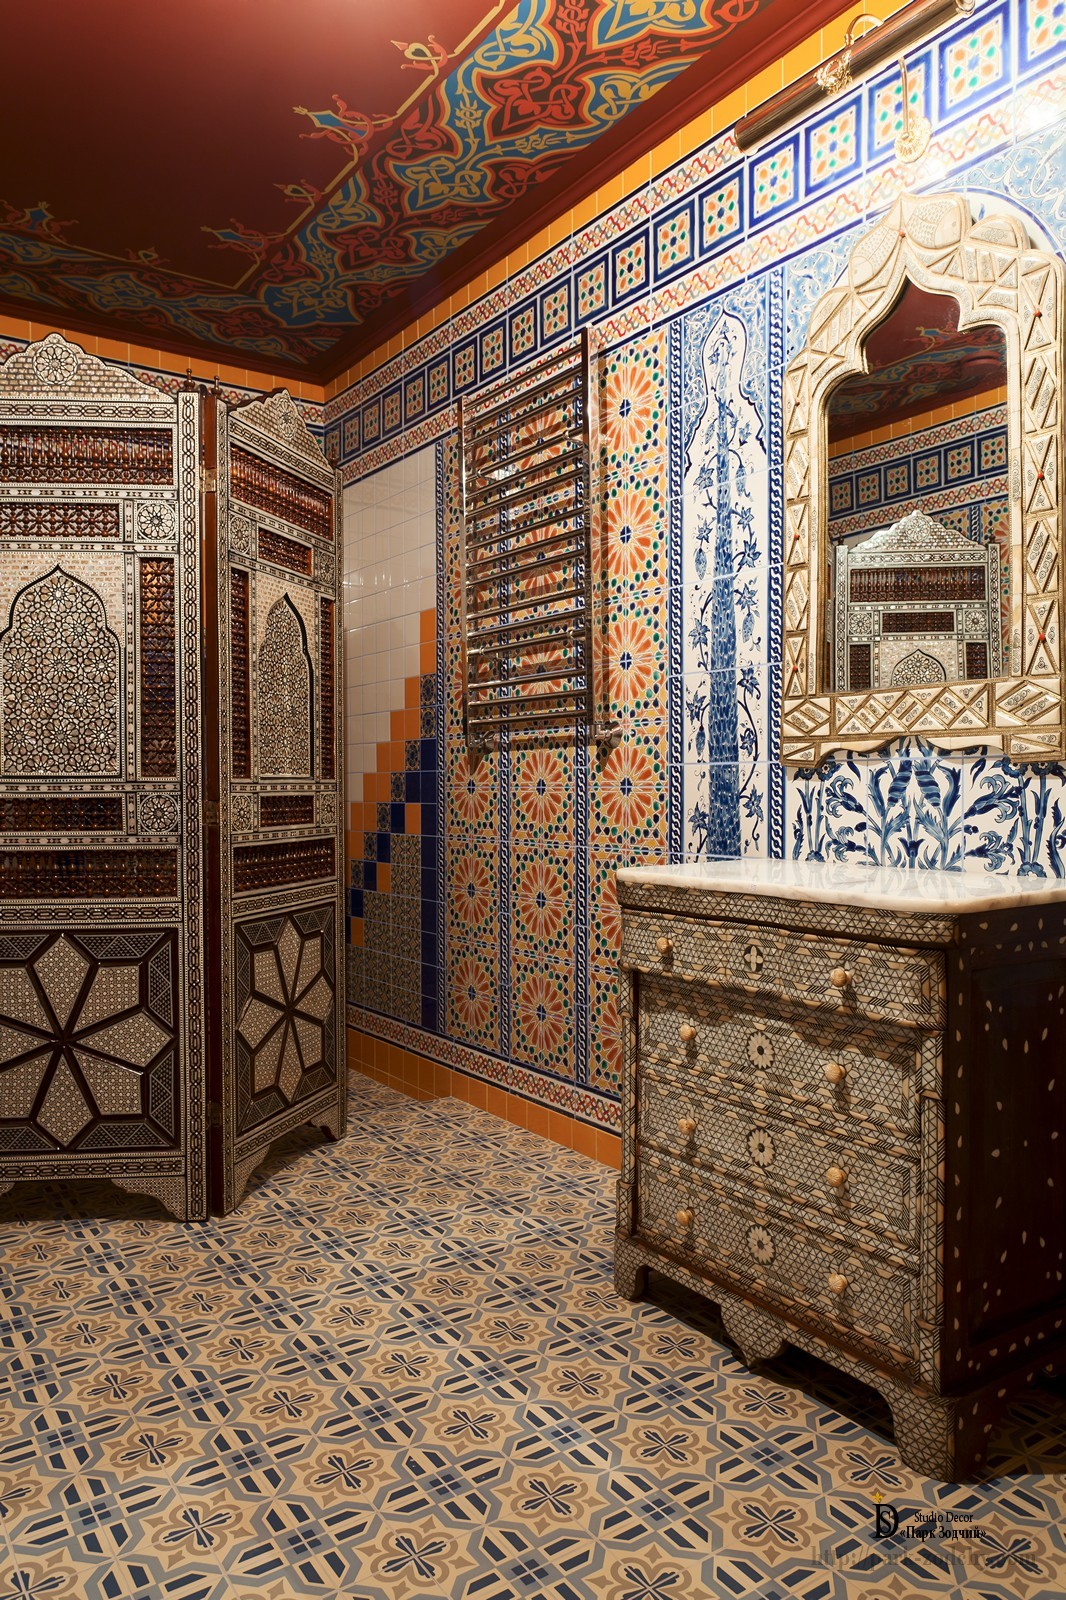 The interior of the Hammam with a cover and a stylized chest of drawers